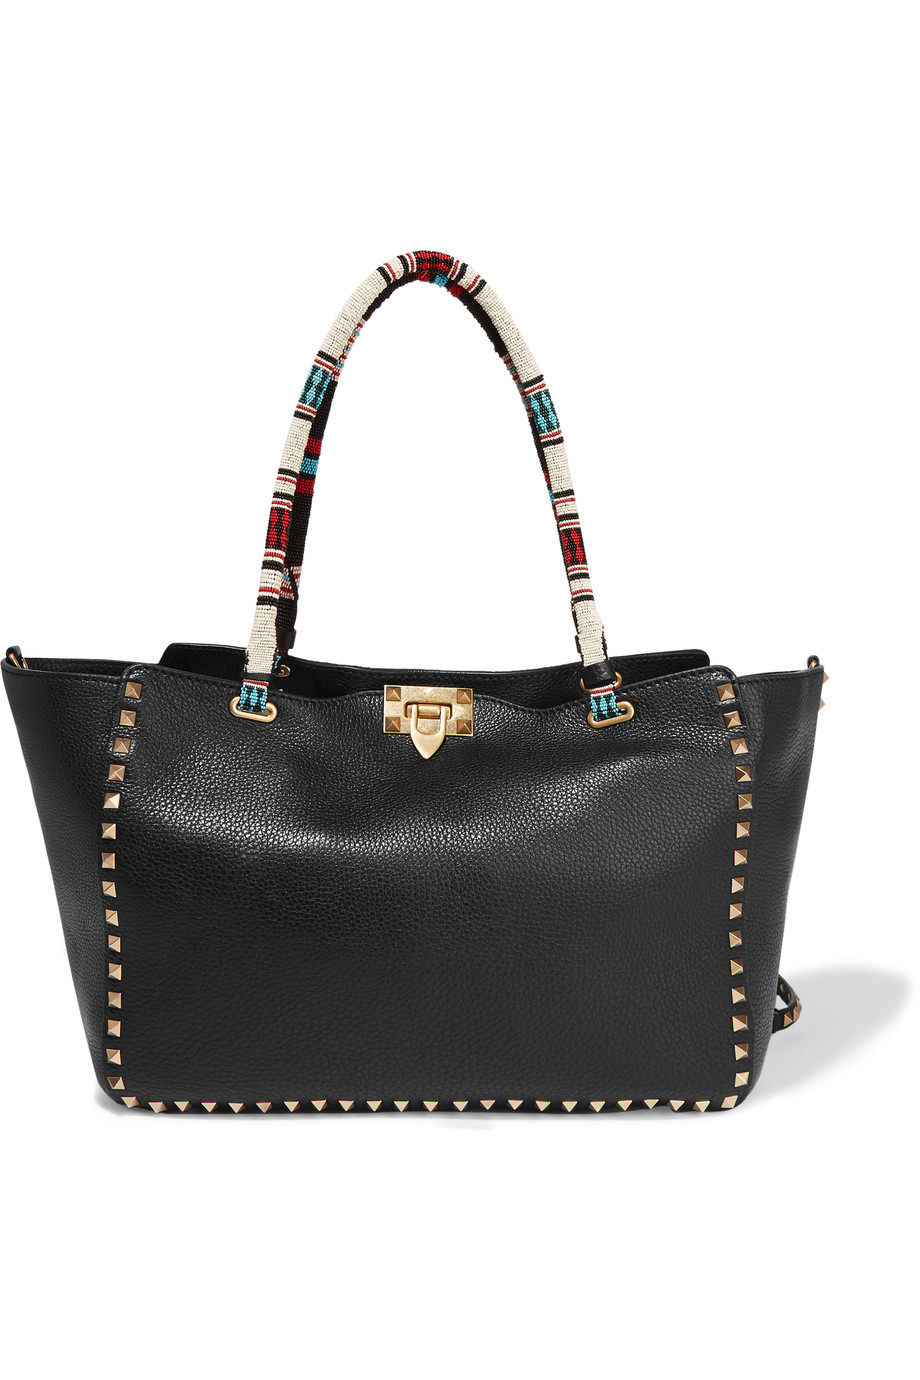 Valentino The Rockstud Beaded Textured-Leather Tote, Black, Women's